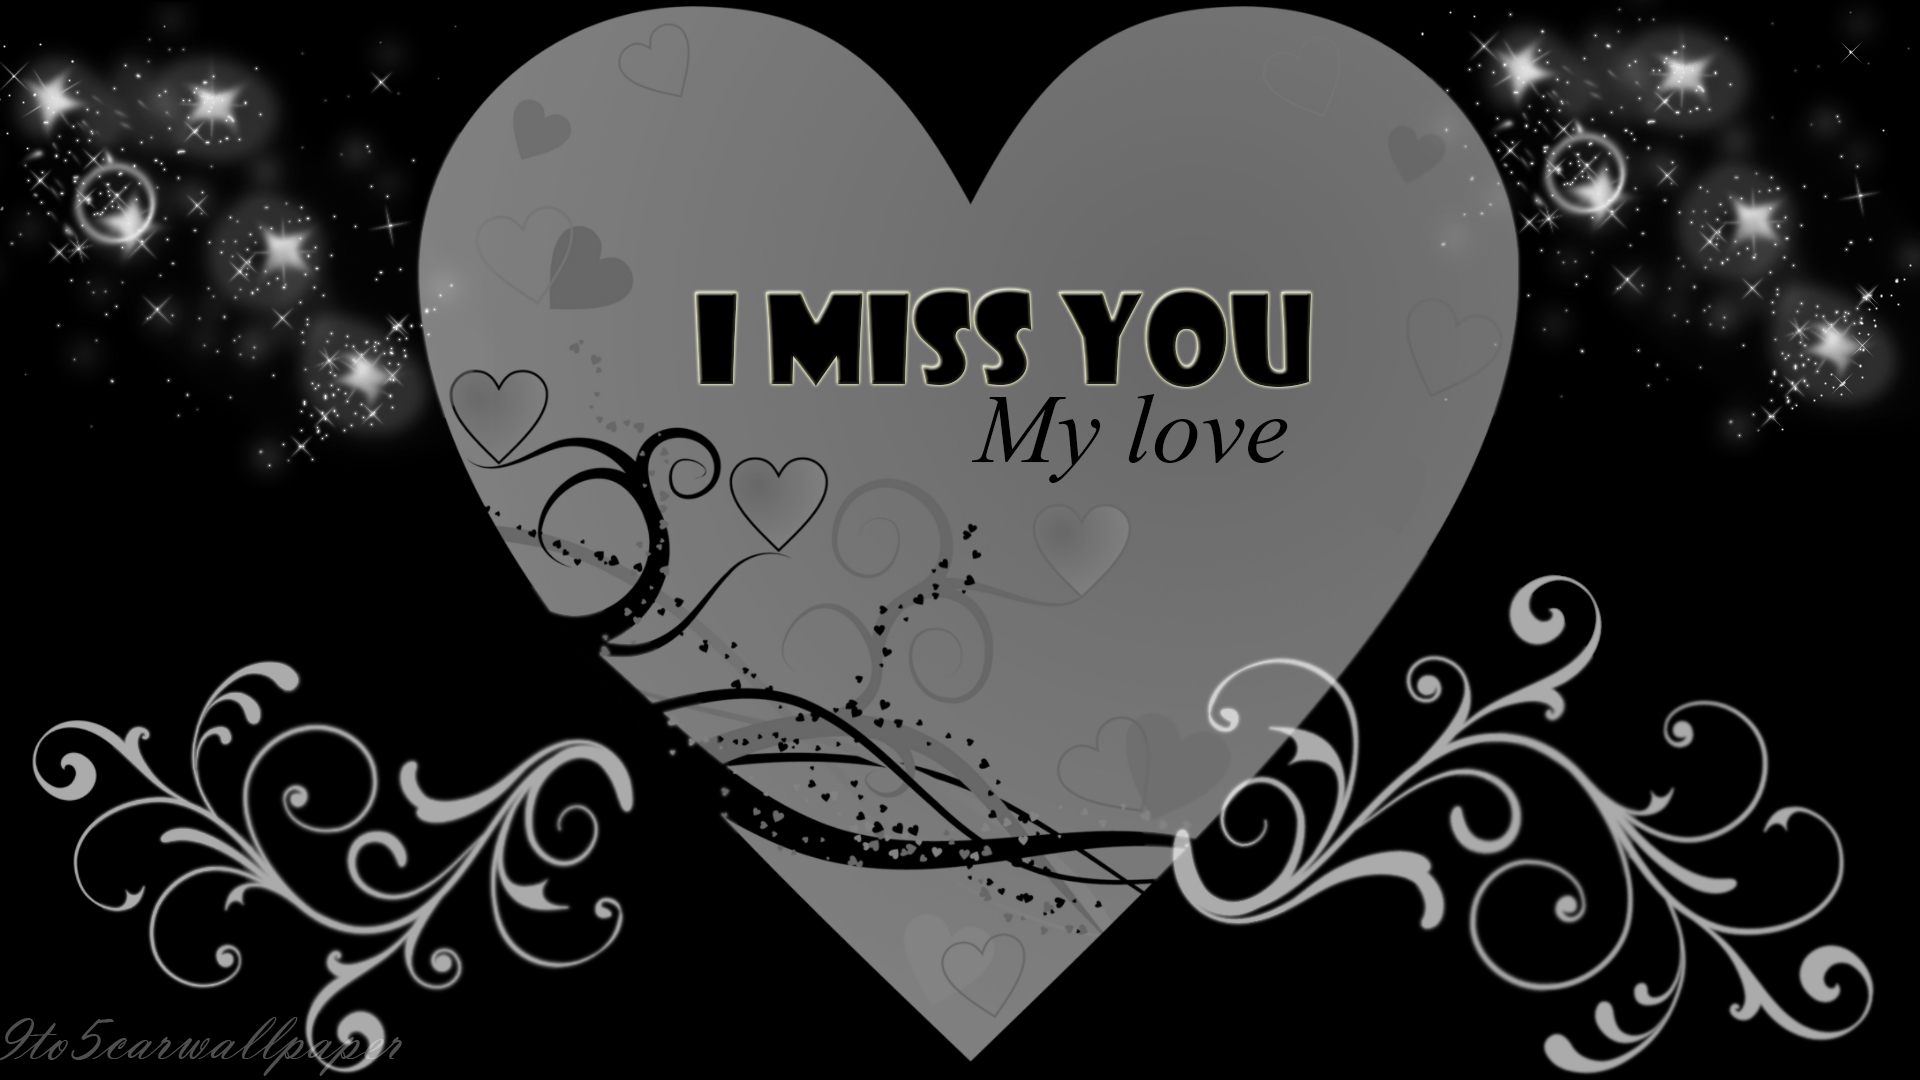 I Love You My Love Wallpaper : I Miss You Images, Quotes & Wallpapers